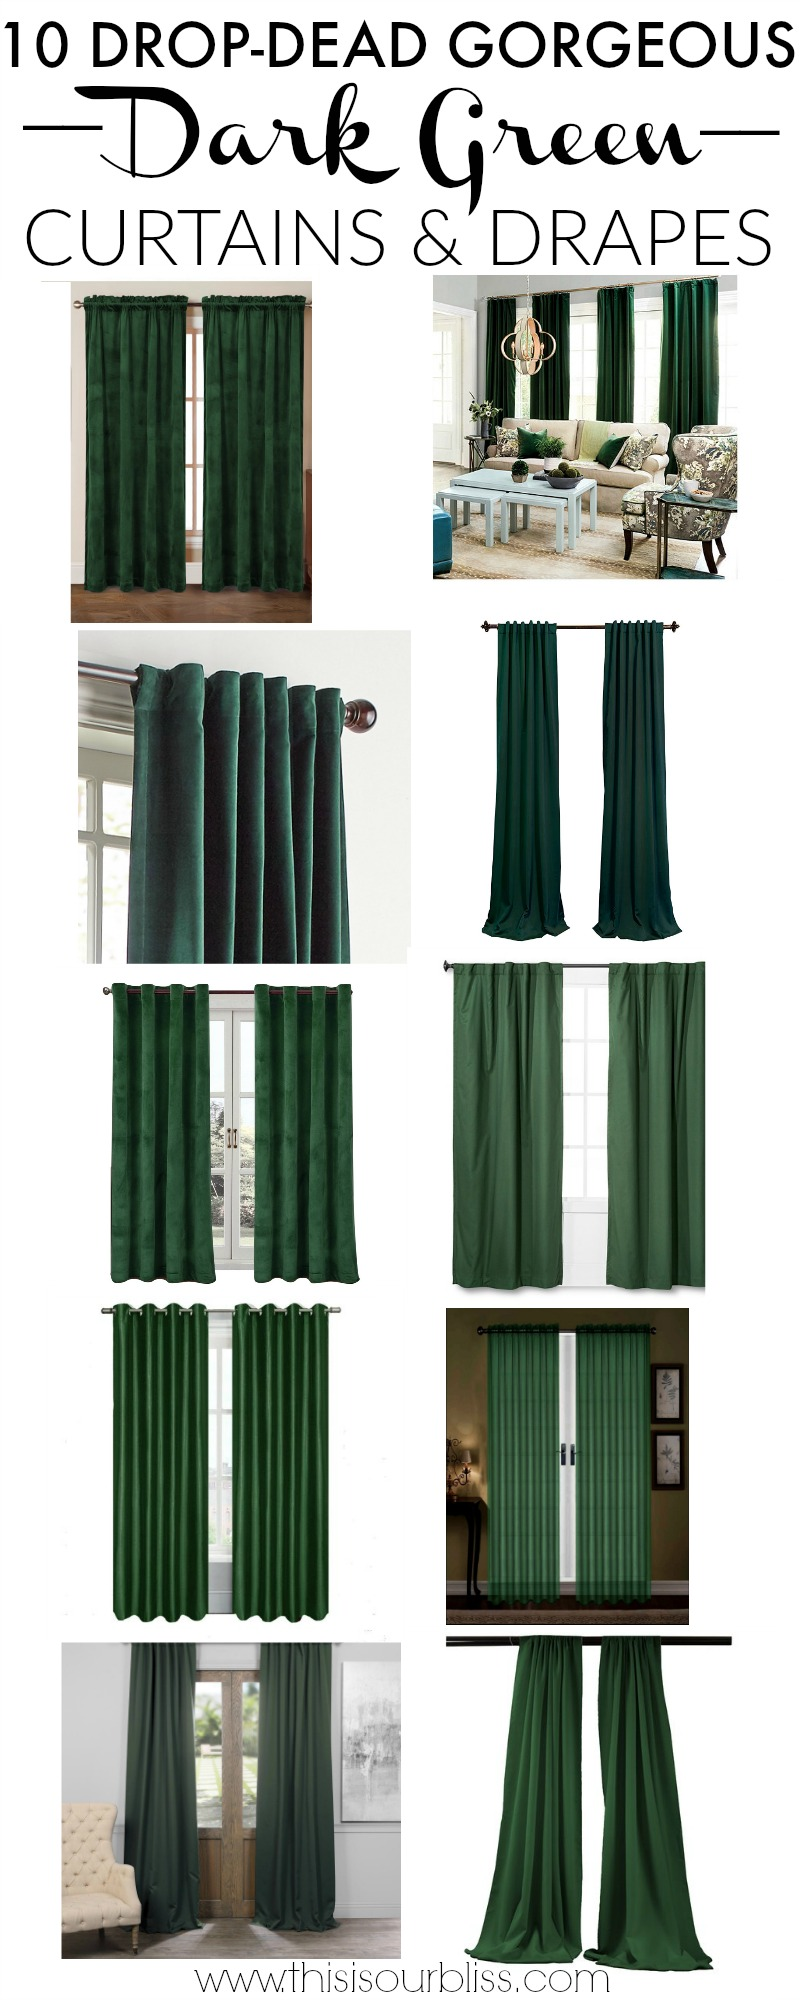 Ten Drop Dead Gorgeous Dark Green Drapes This Is Our Bliss